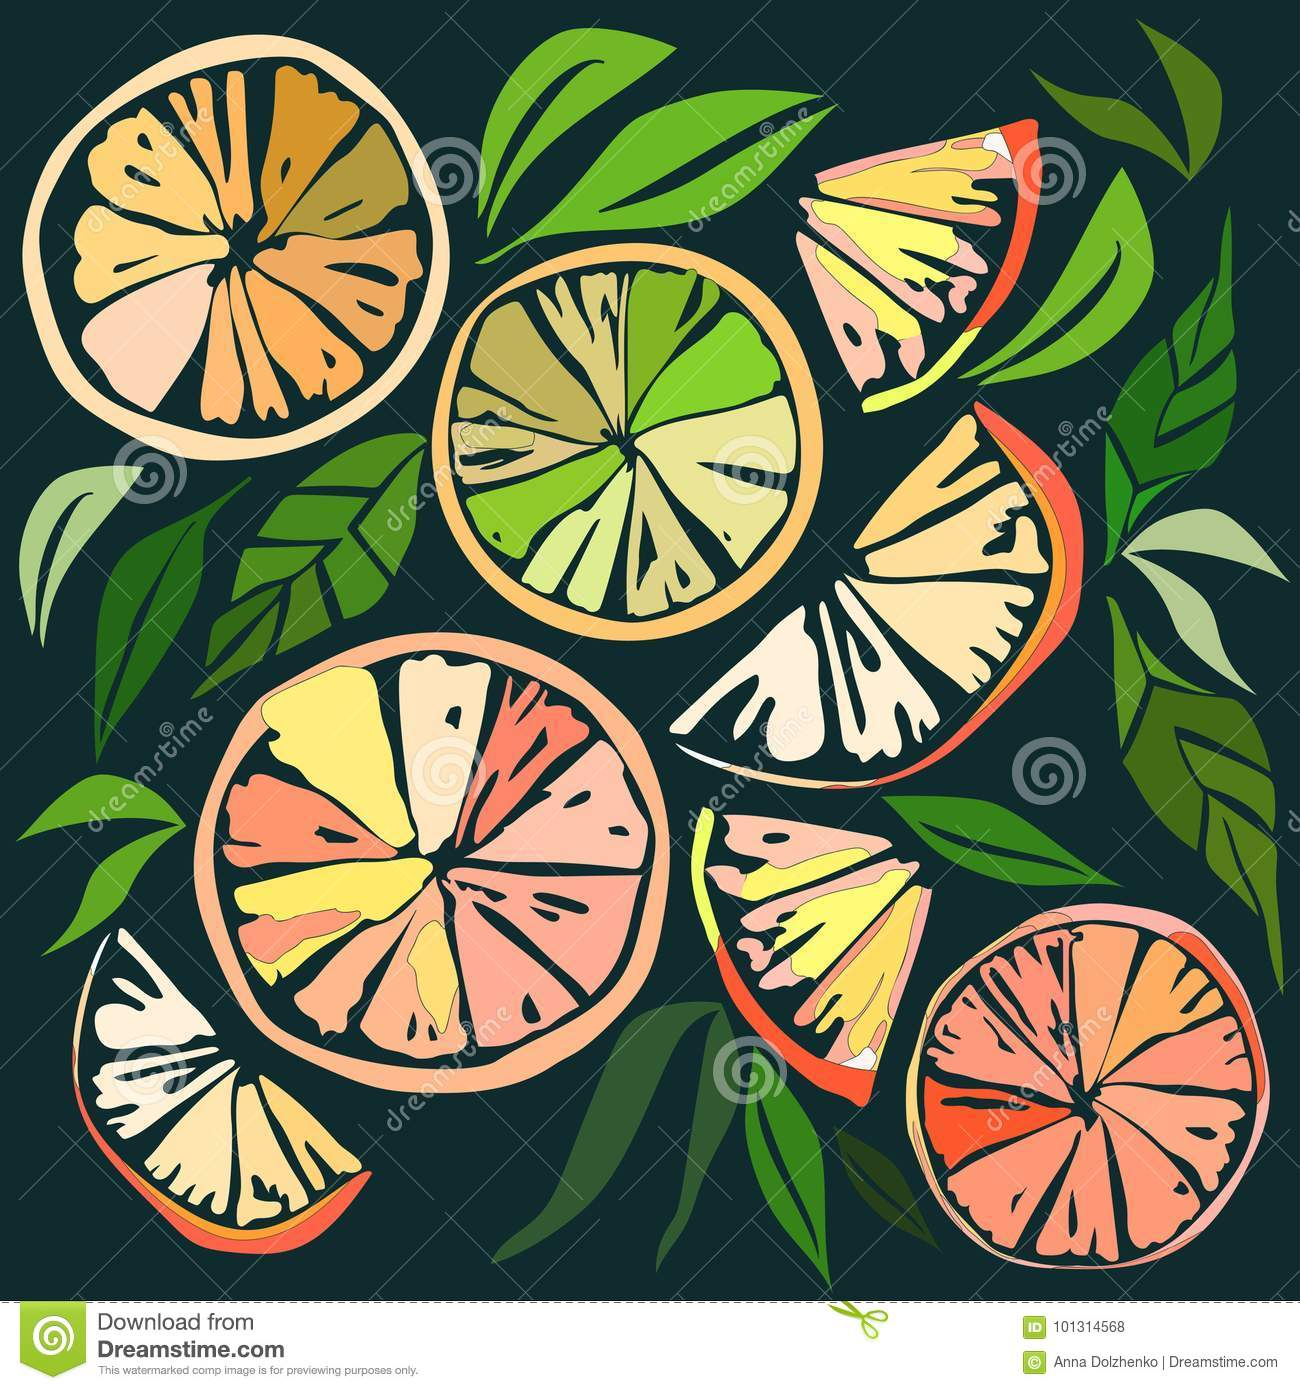 Beautiful bright colorful delicious tasty yummy ripe juicy lovely orange summer autumn dessert slices of oranges and mandarins pat